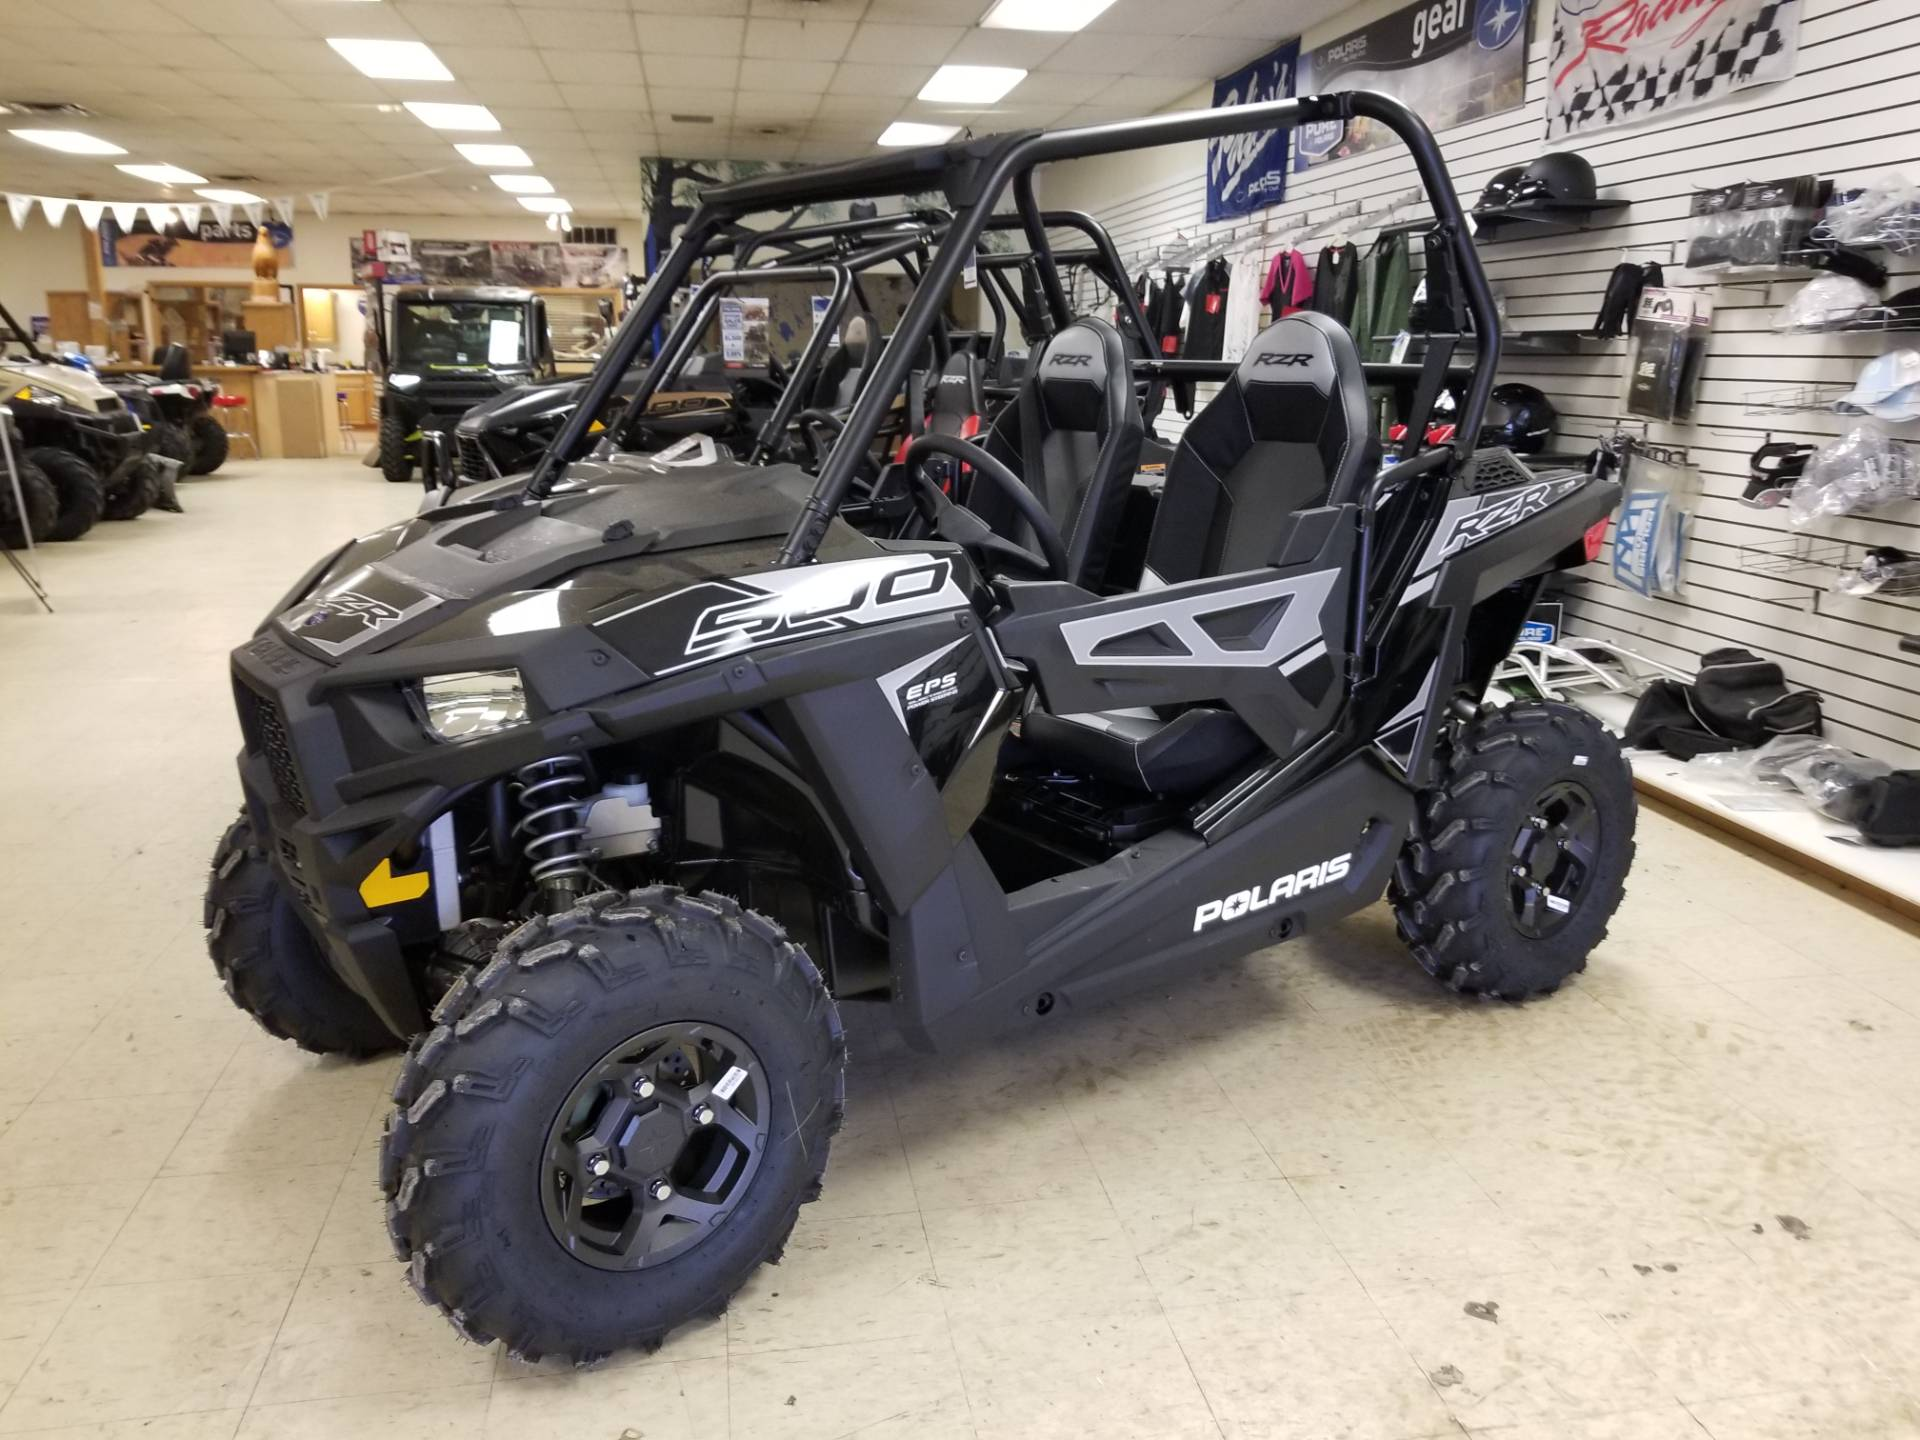 2019 Polaris RZR 900 EPS in Bigfork, Minnesota - Photo 1